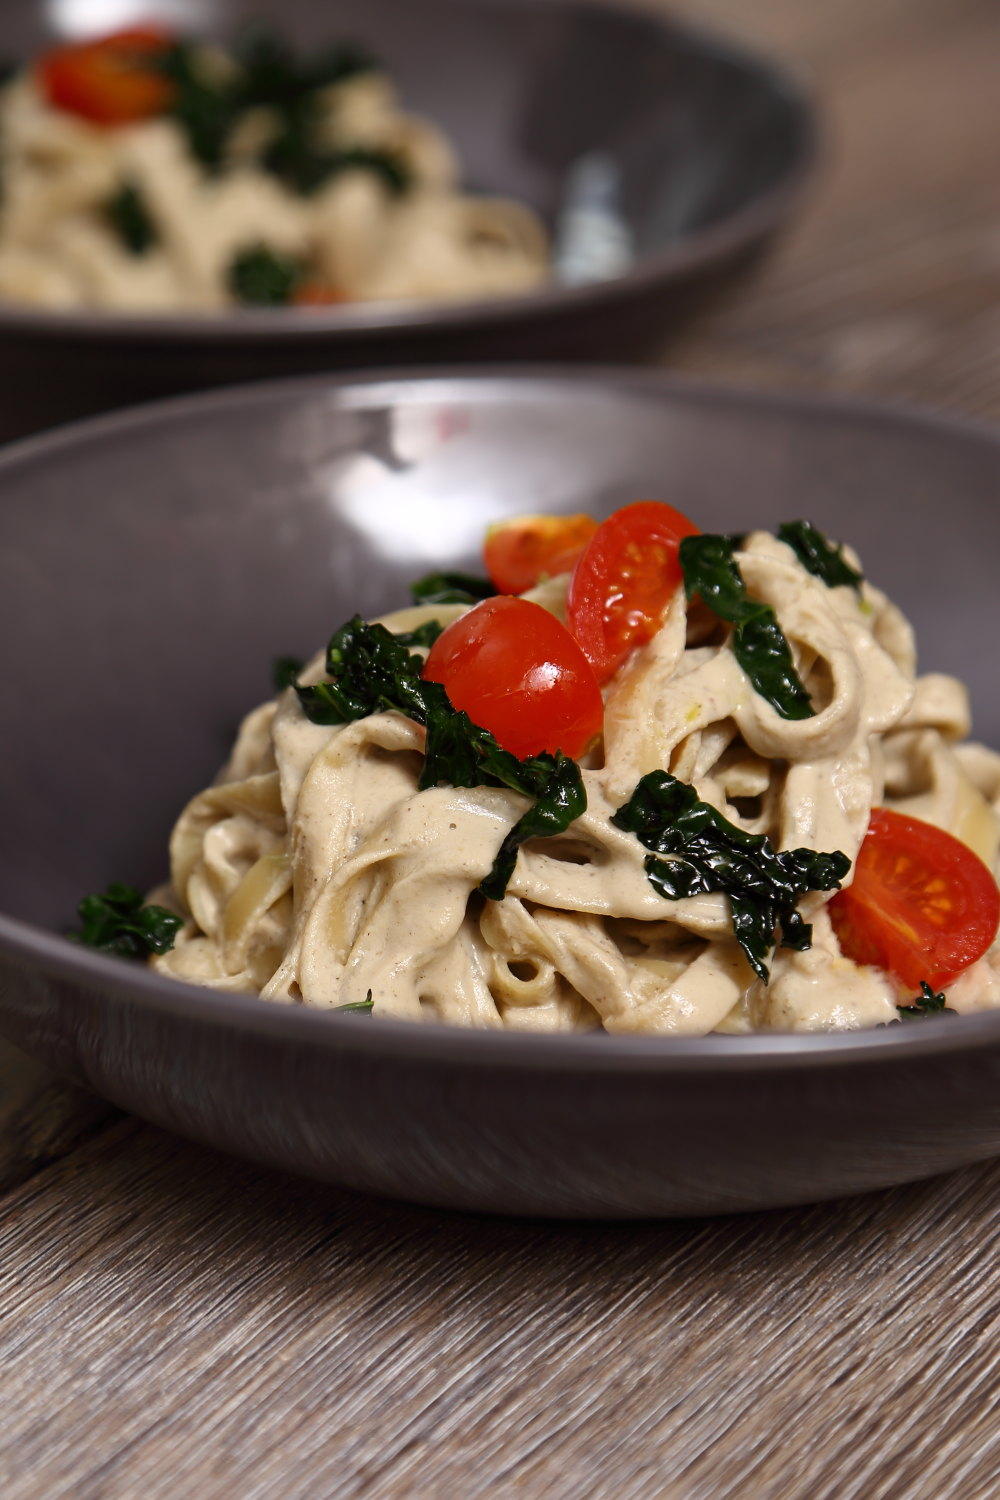 Vegan Alfredo Sauce - Vegan Pasta Alfredo served with black kale and cherry tomatoes.